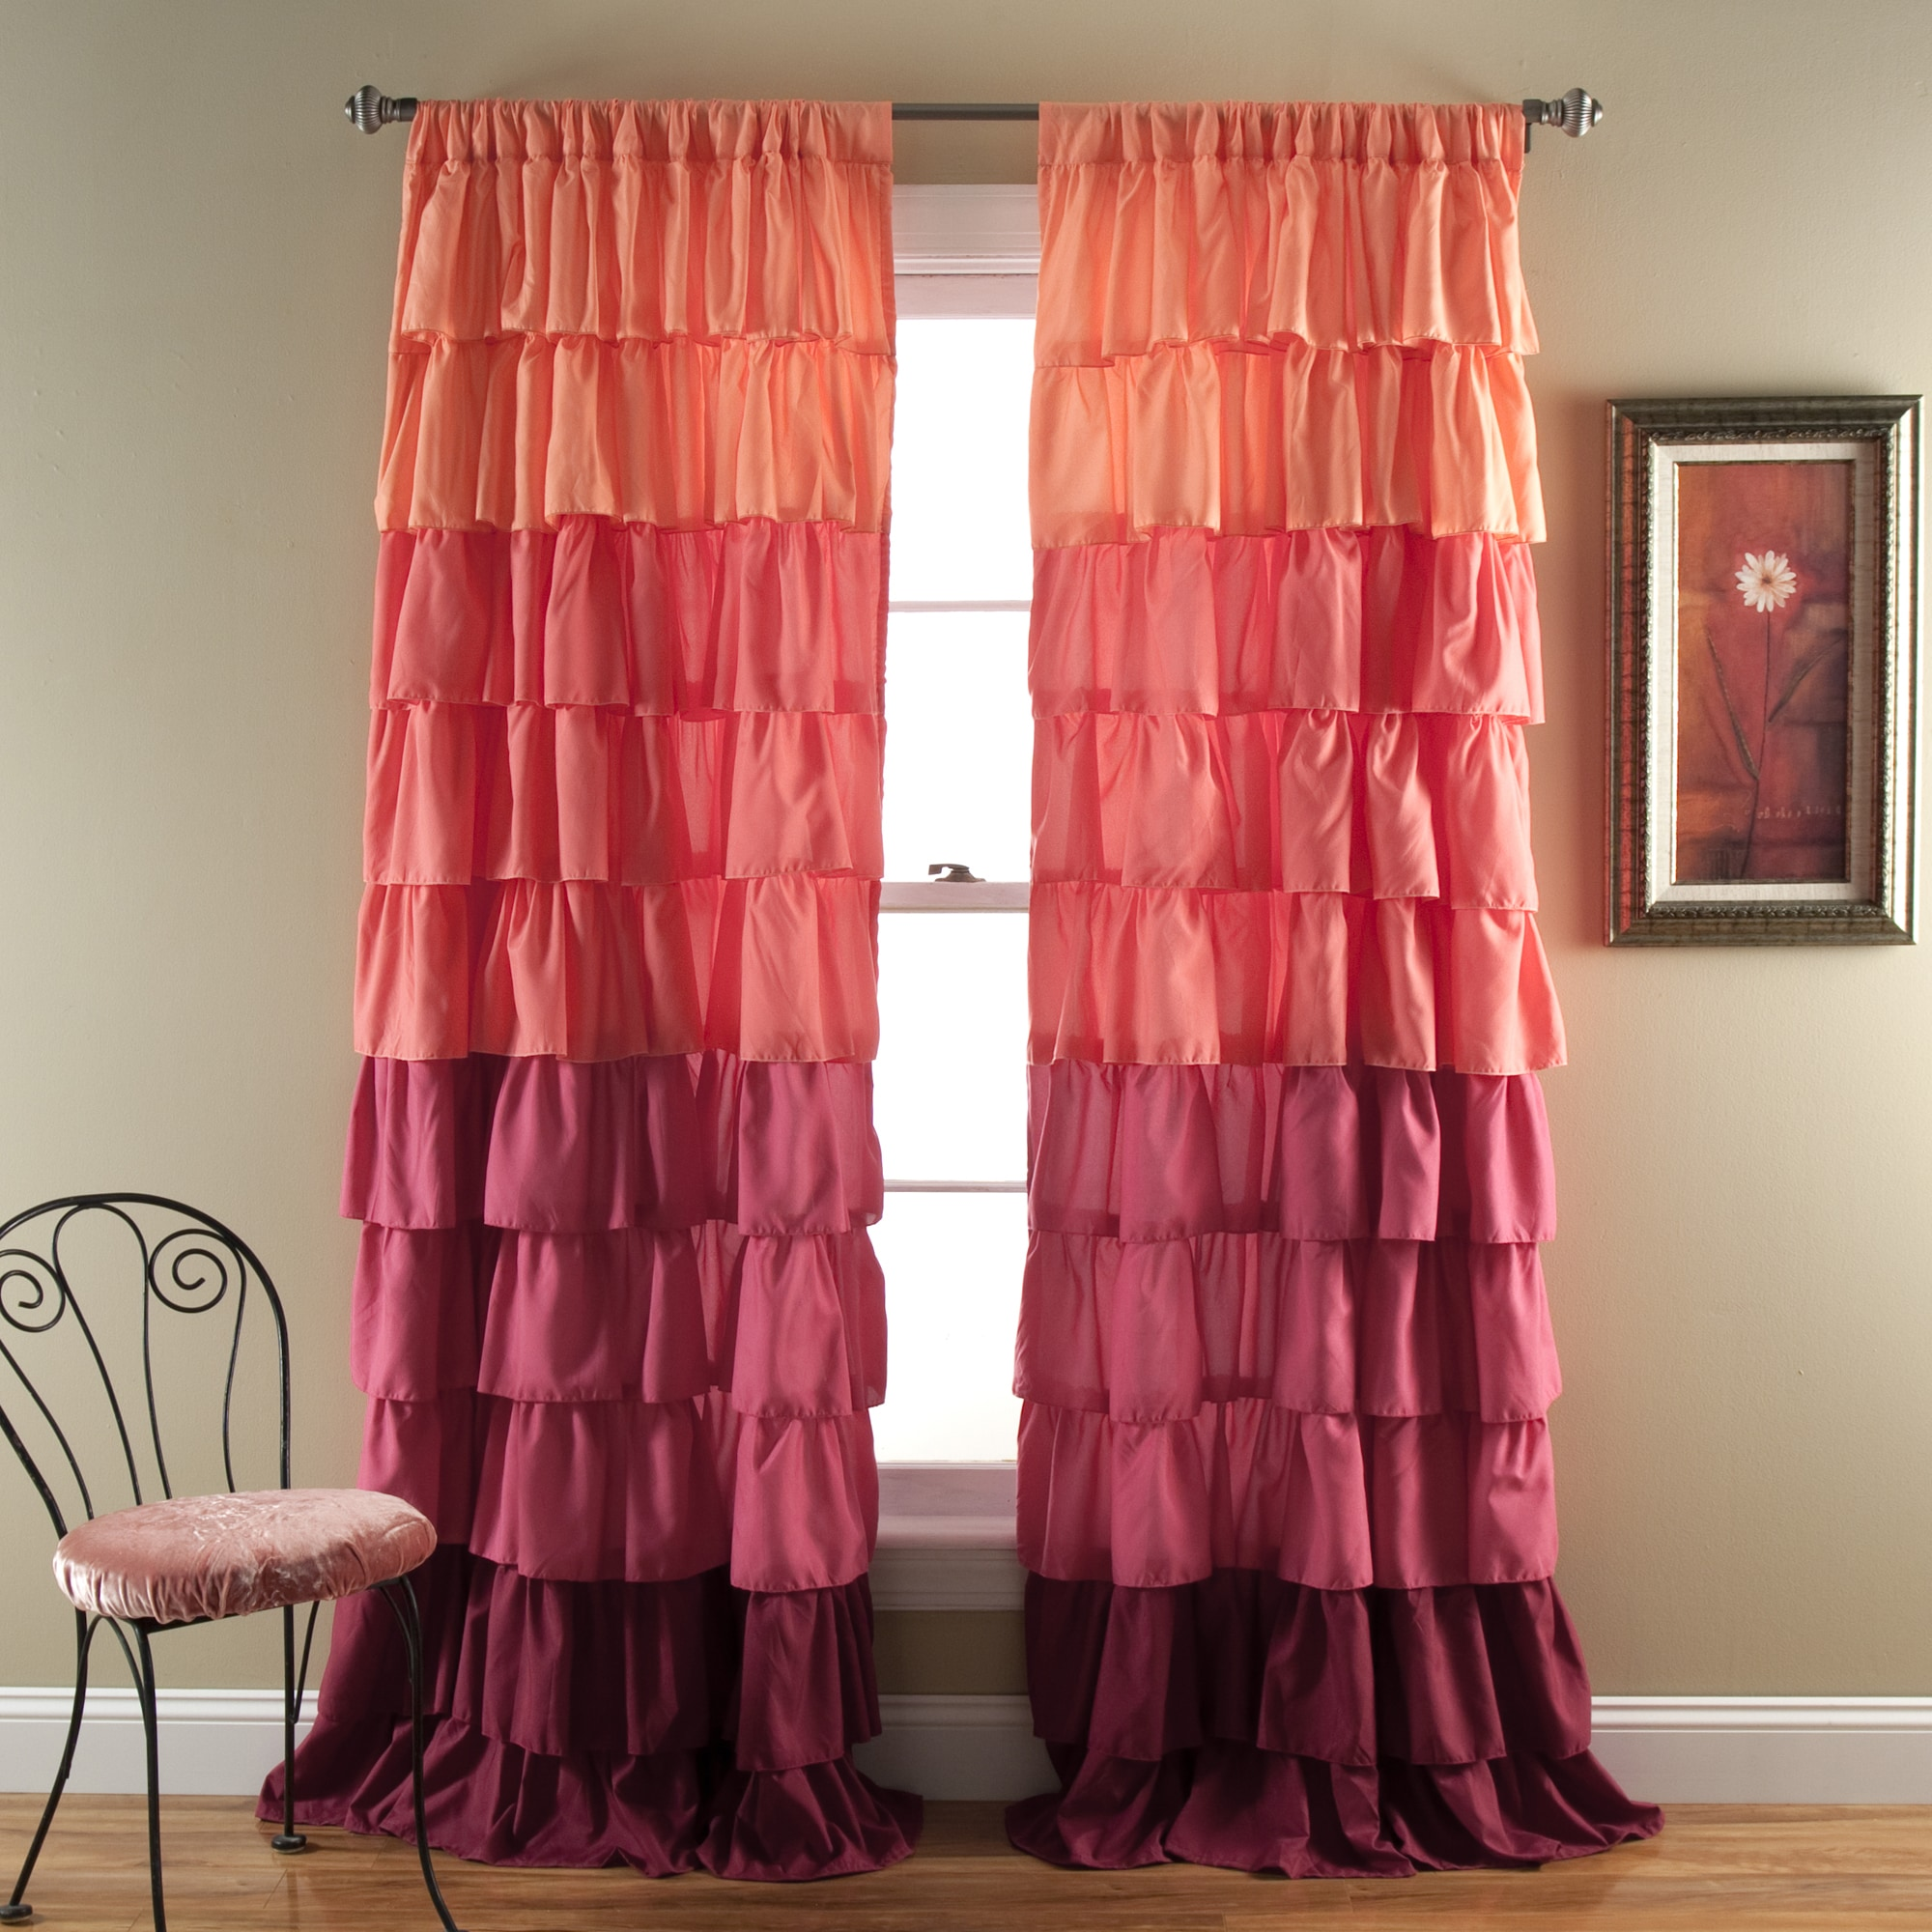 curtains curtain kylie at eyelet ombre ready top lined panels made minogue pin grey natala slate home silver ring velvet